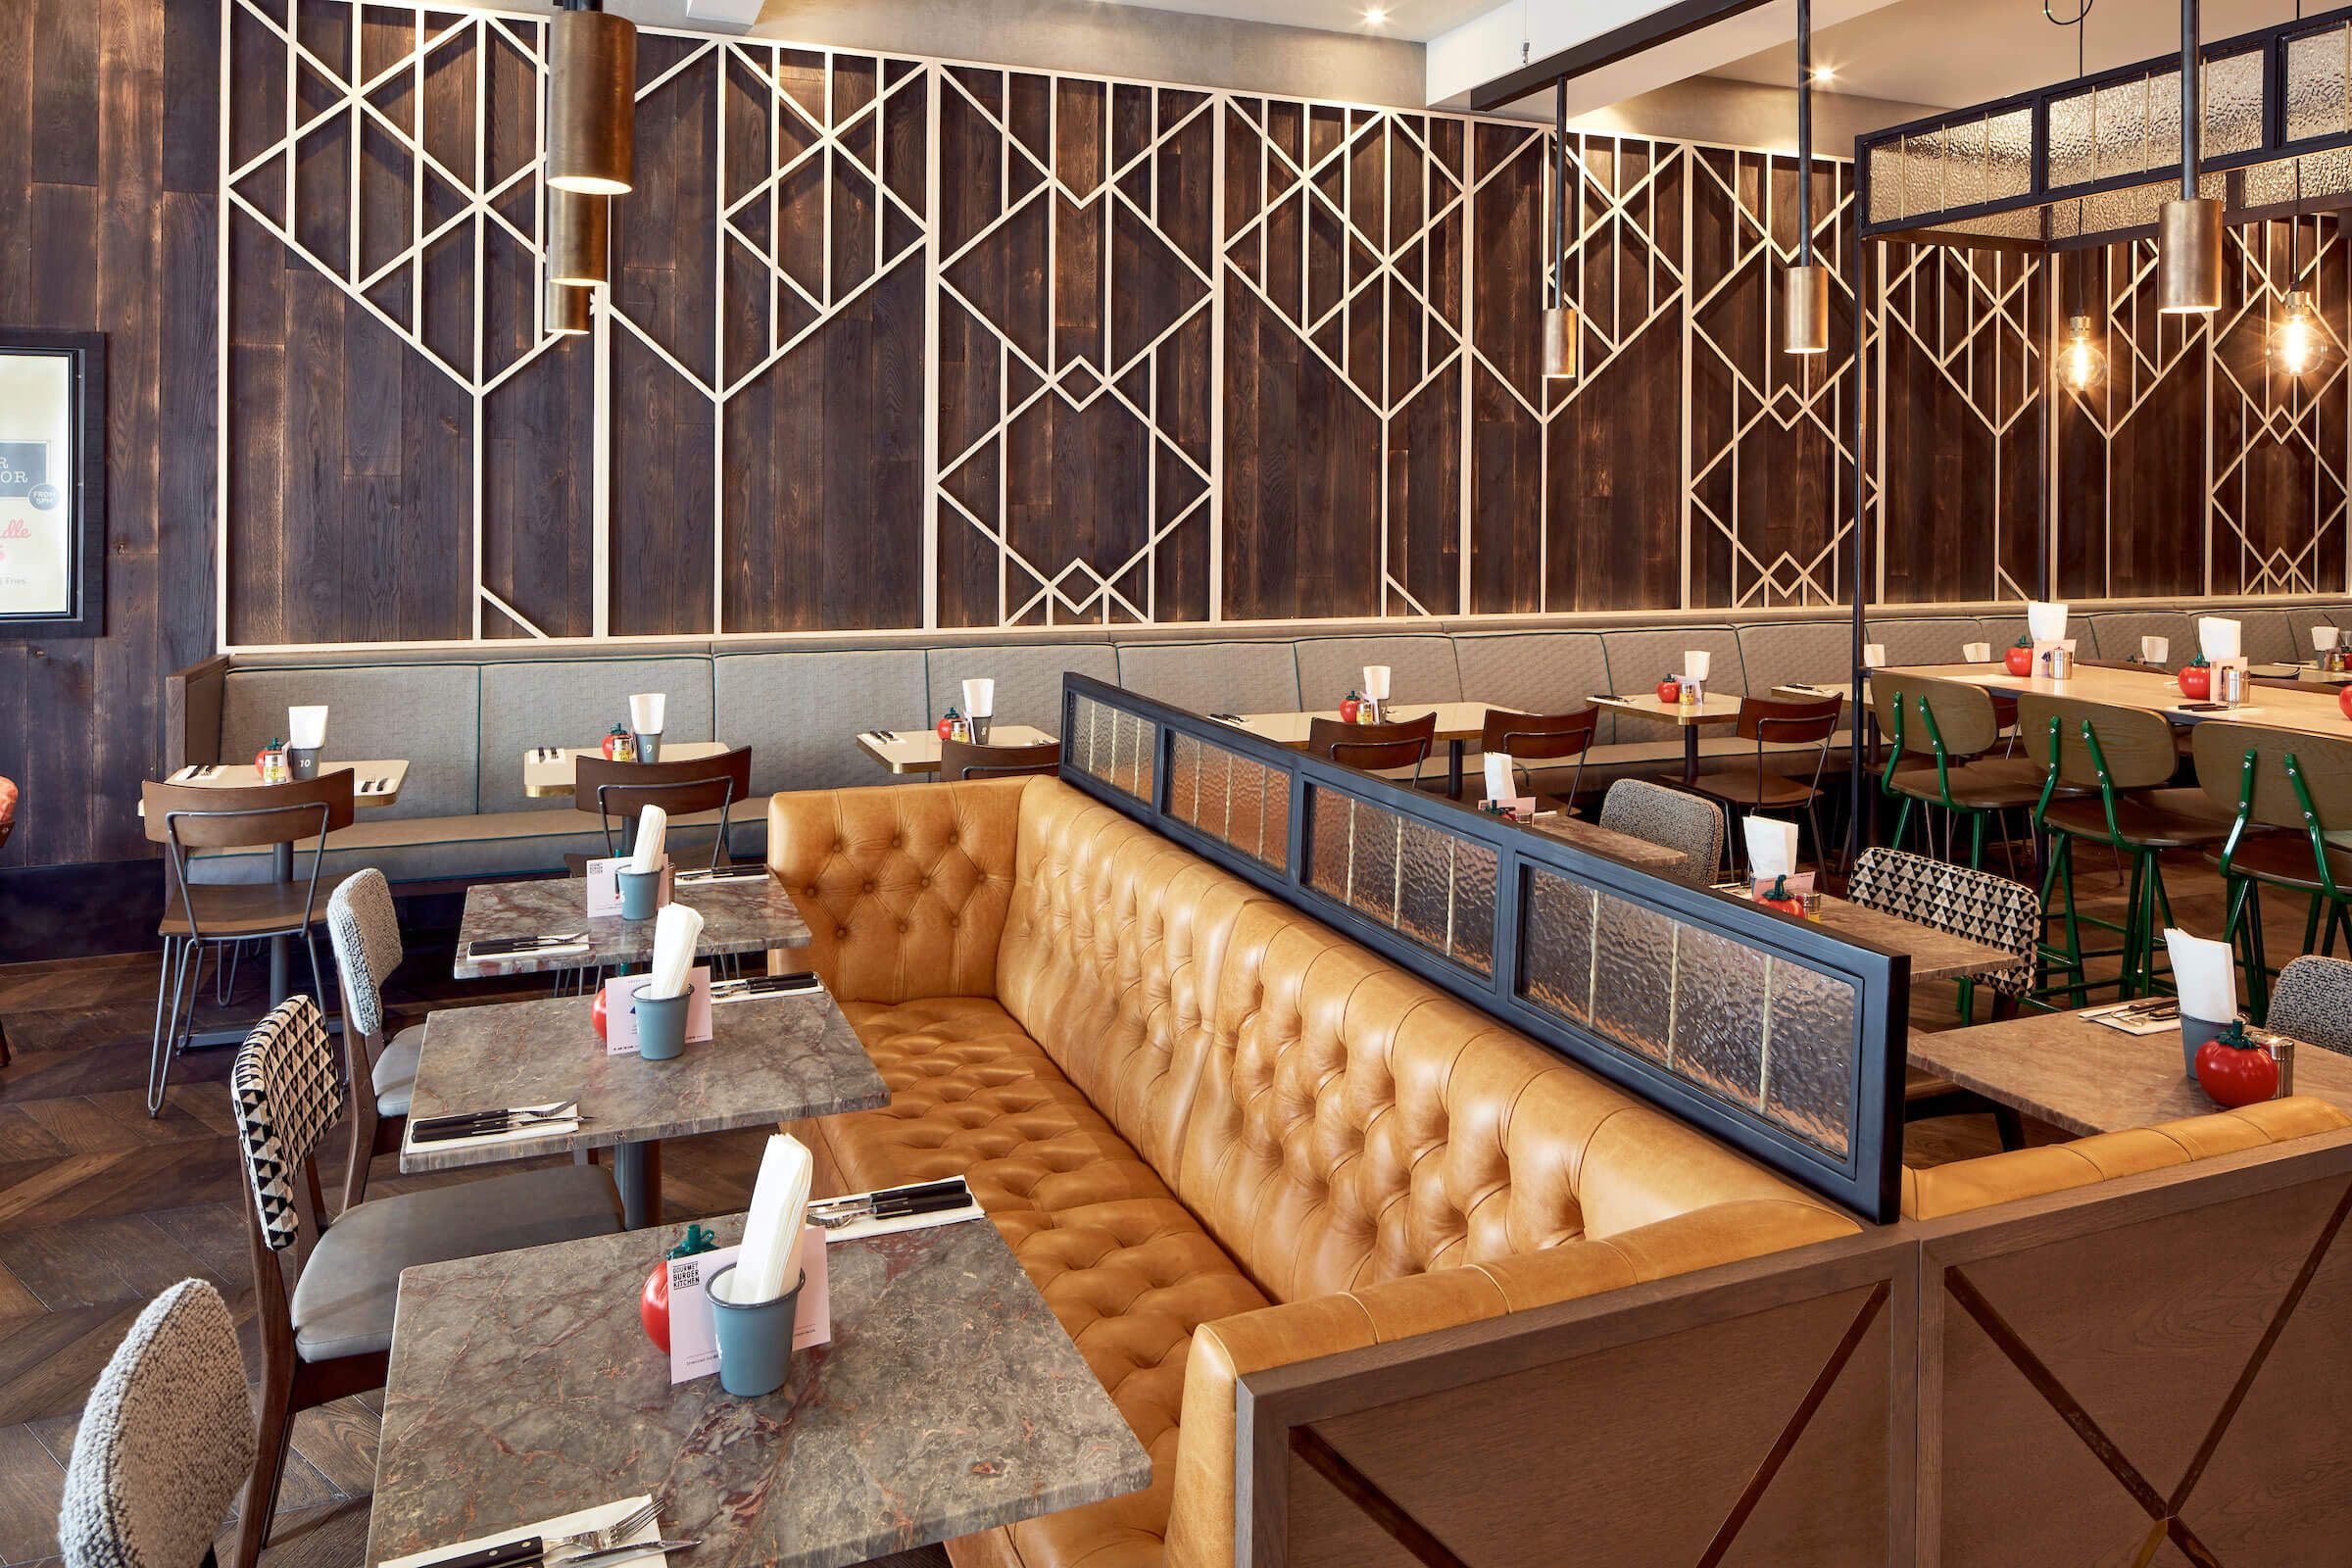 GBK Staines  Bespoke Restaurant Seating   Craftwood is part of Restaurant seating -